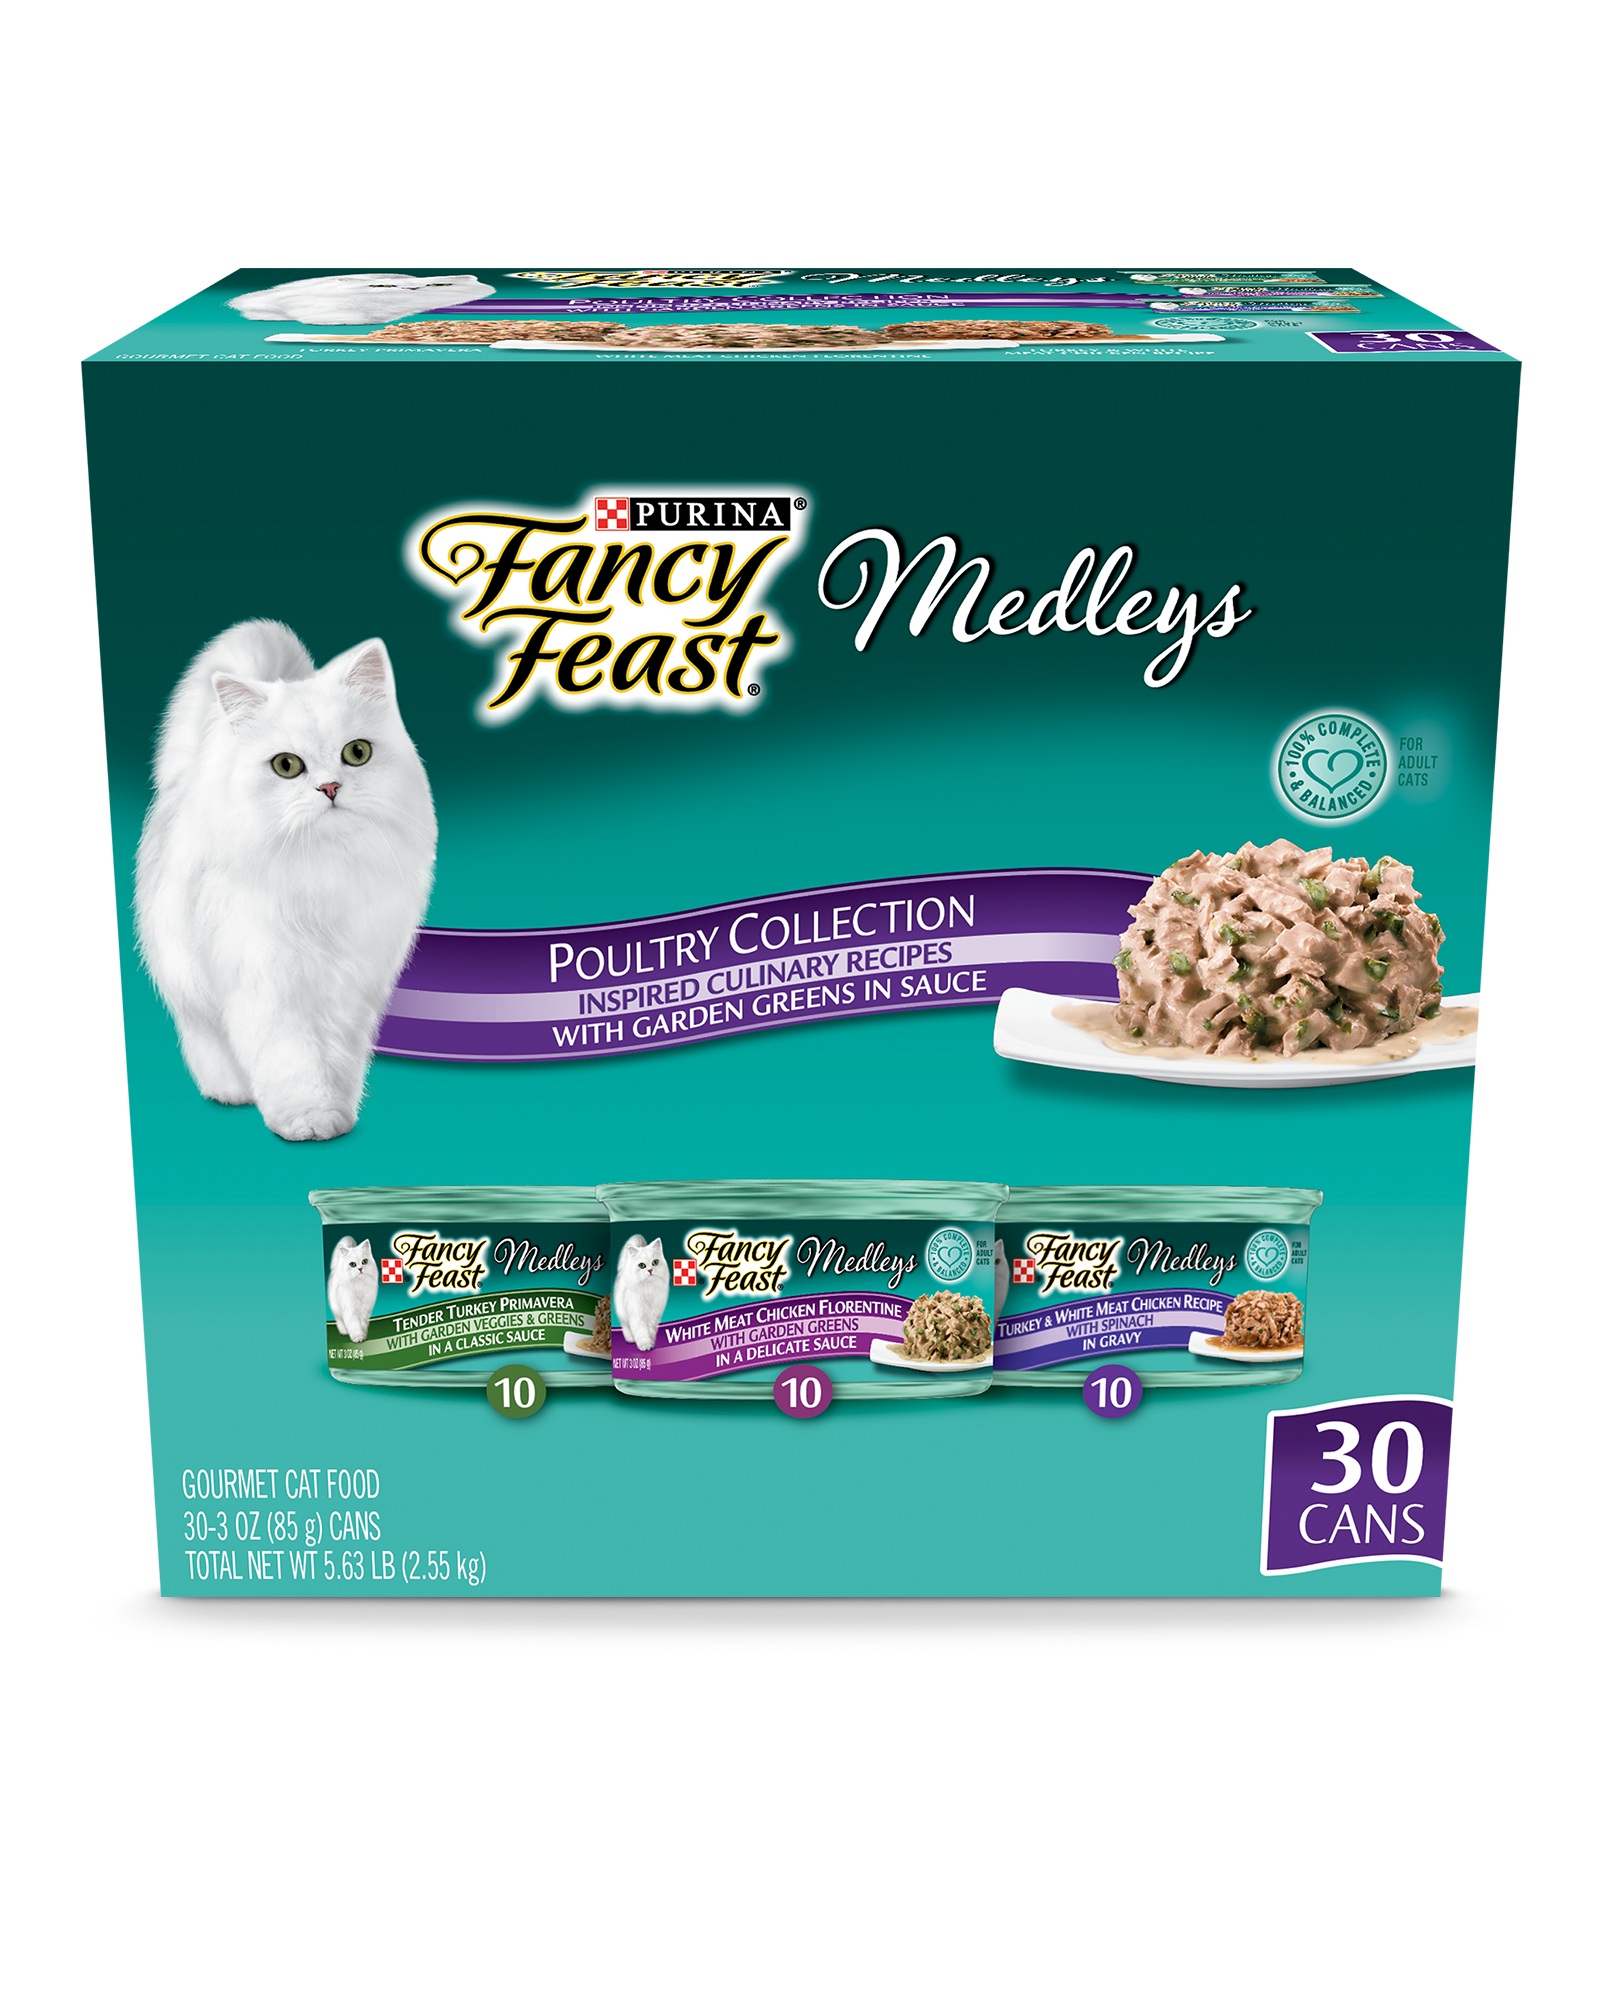 fancy-feast-medleys-poultry-collection